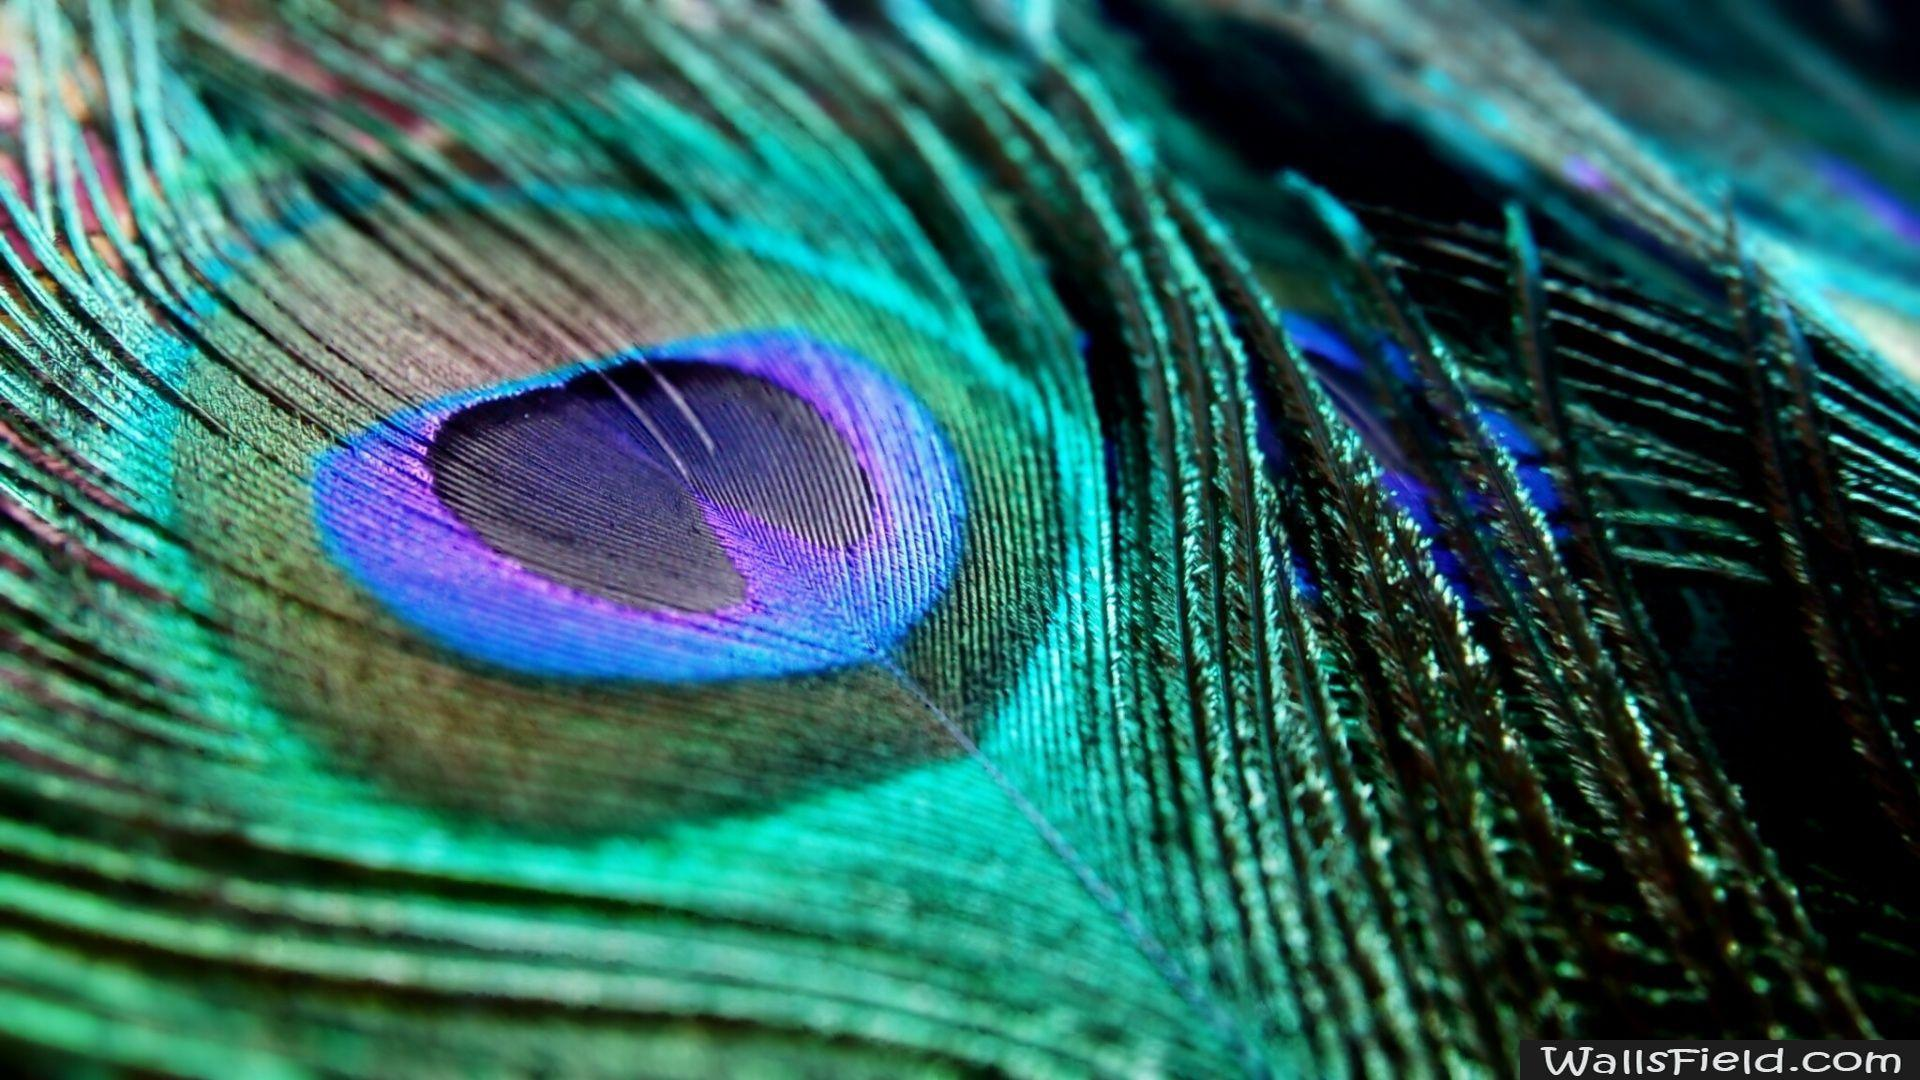 Wallpapers Of Peacock Feathers HD 2016 1920x1080